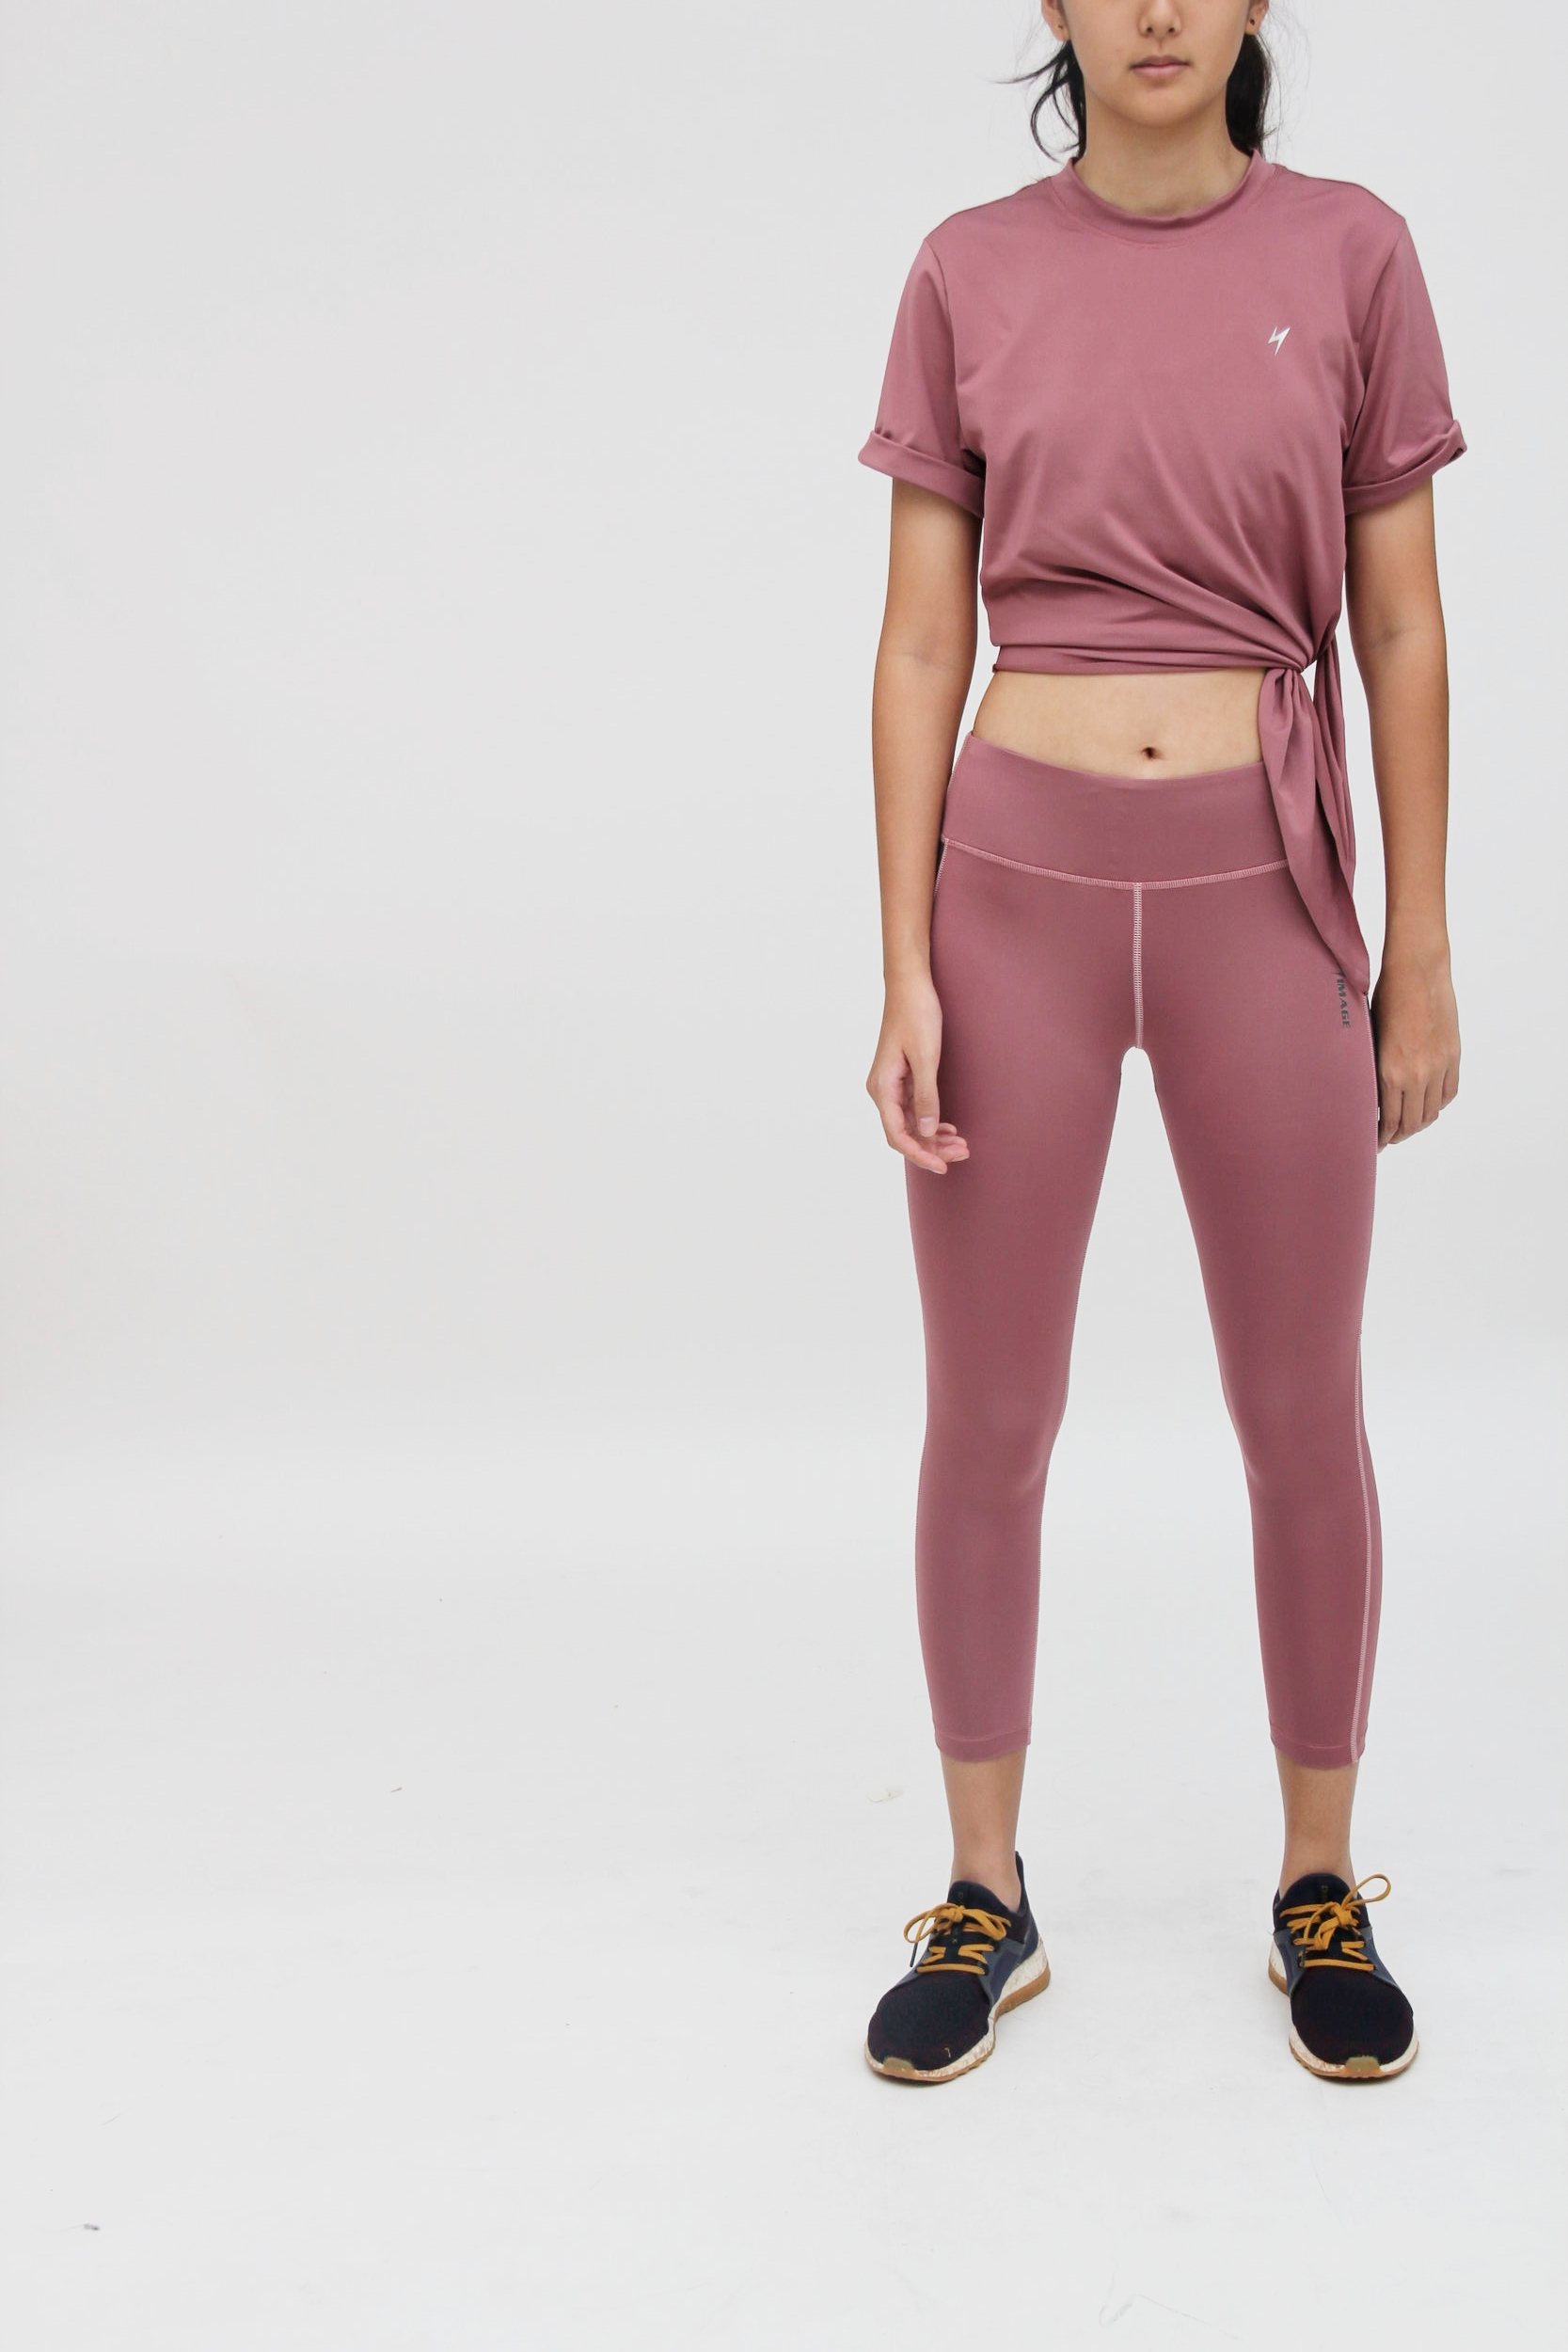 Designed for - Running, Gym and Yoga